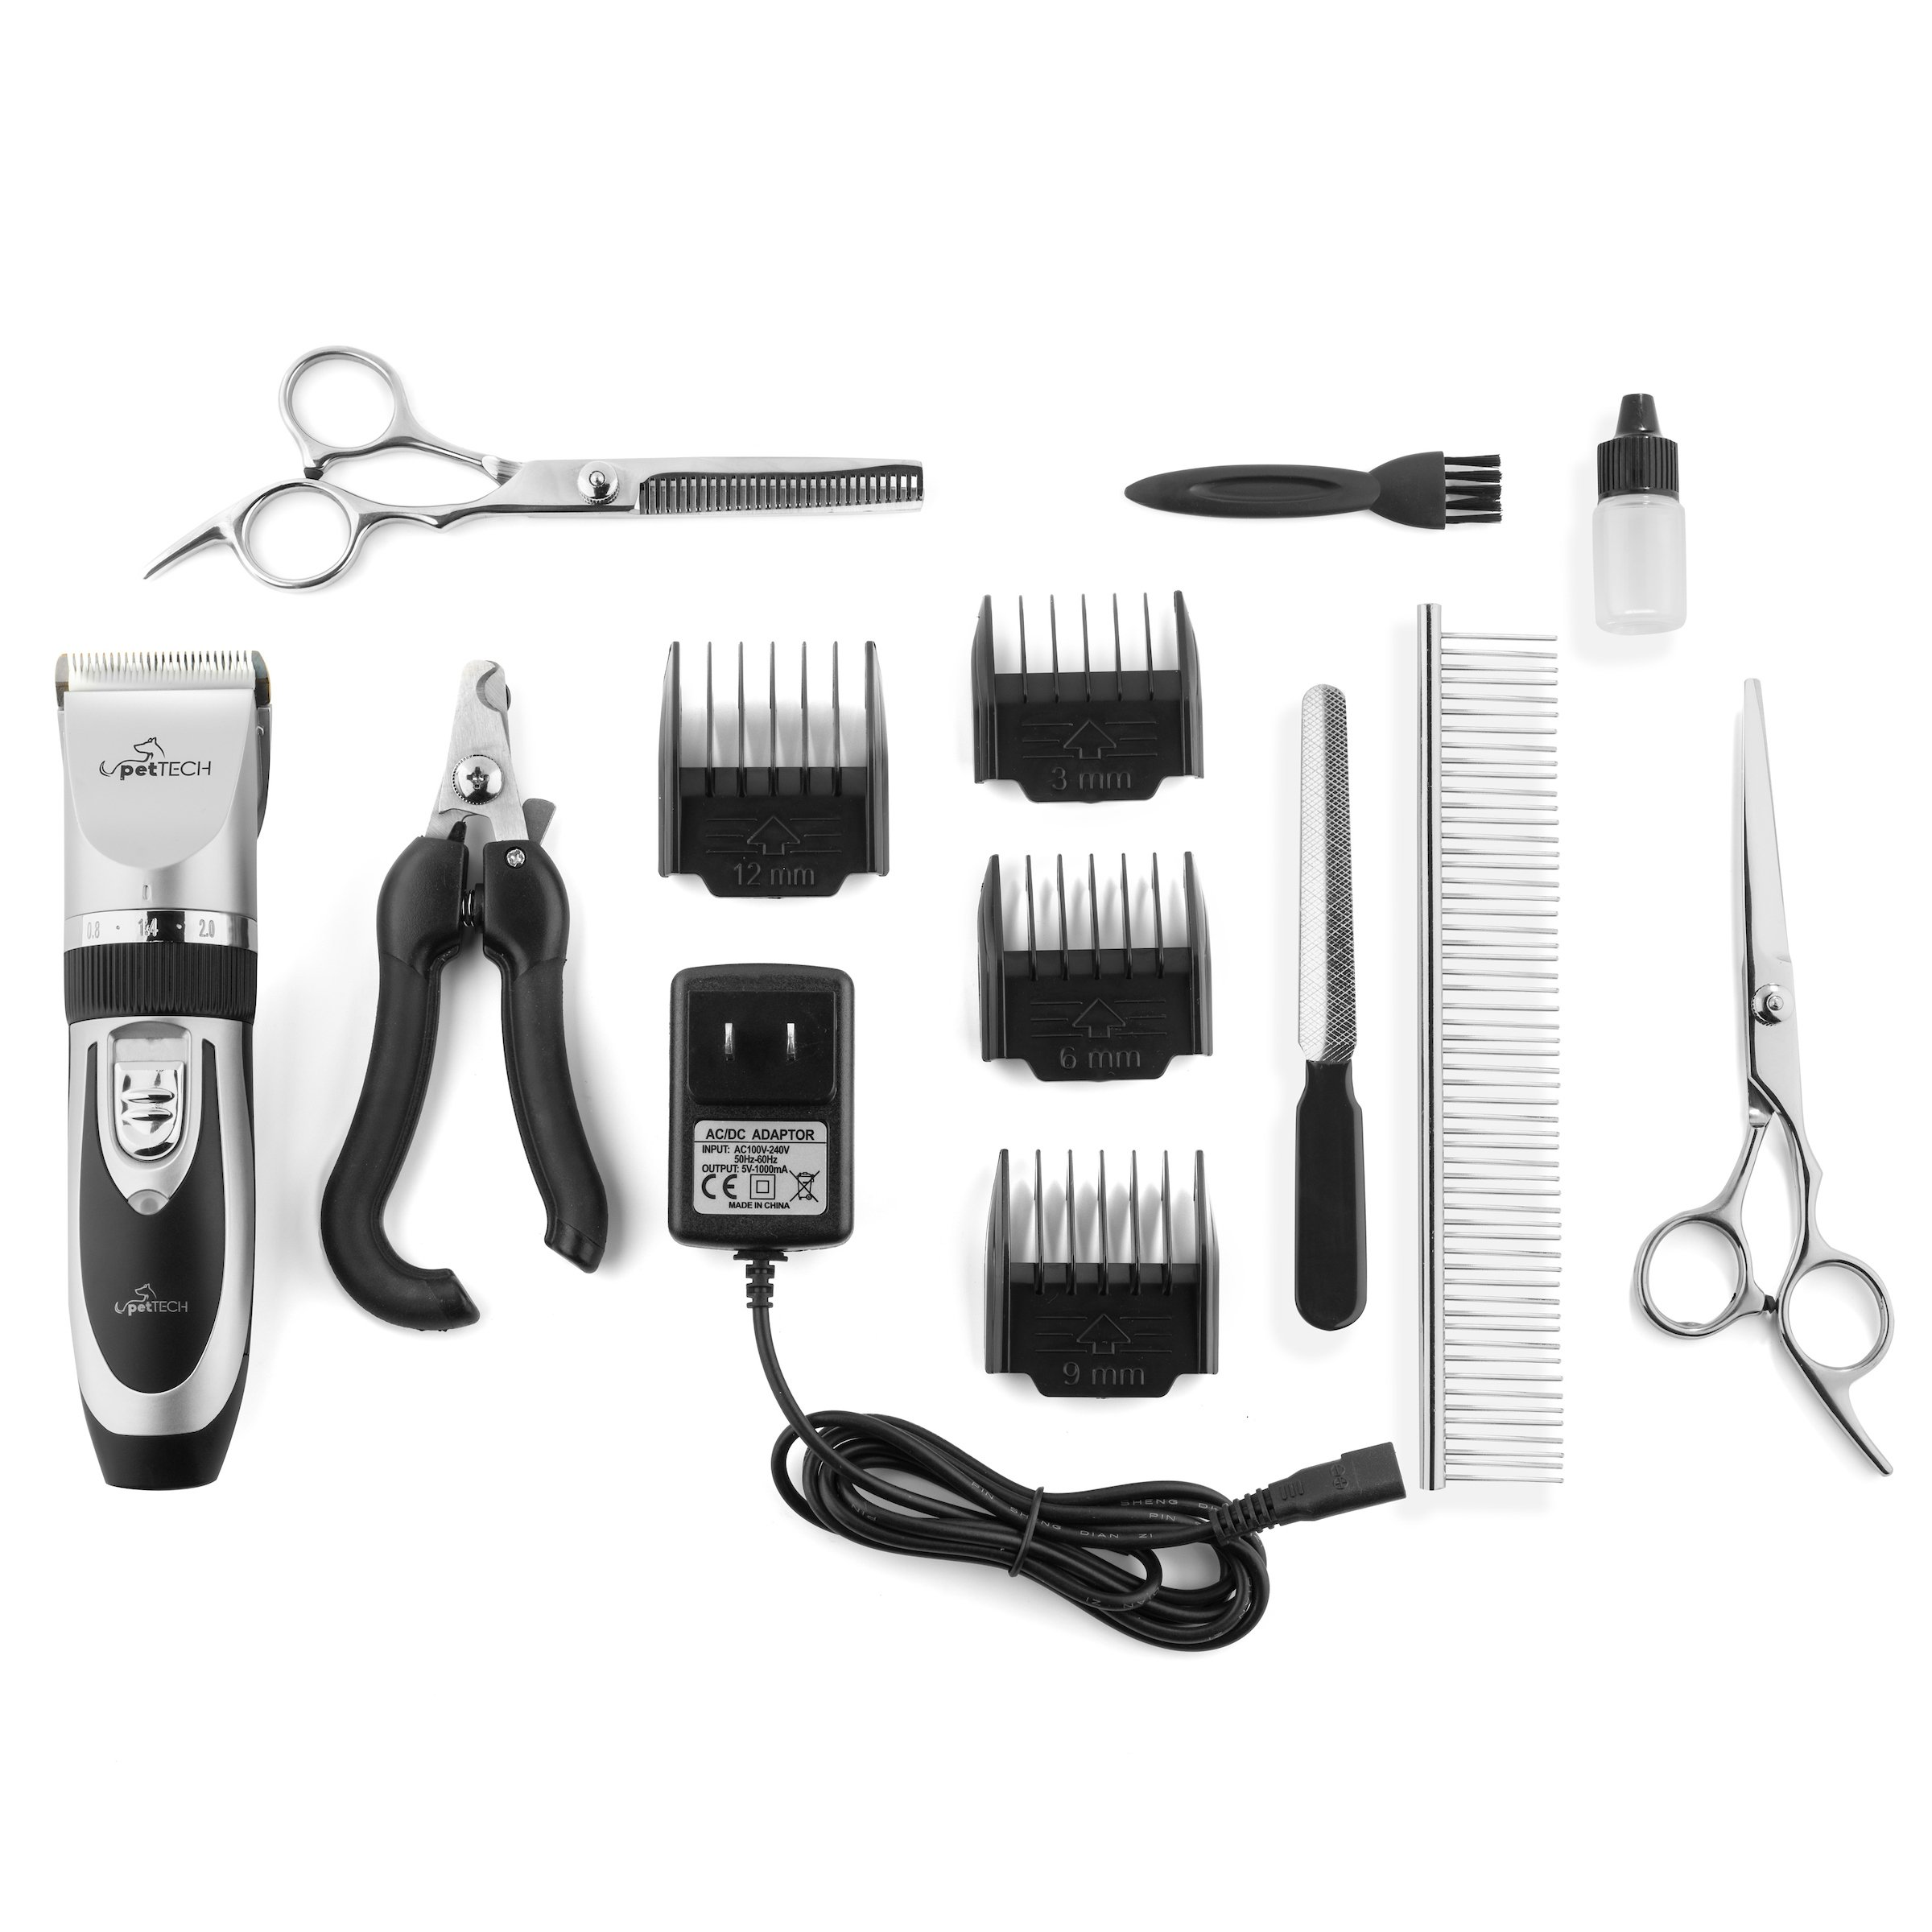 PetTech Professional Dog Grooming Kit - Rechargeable, Cordless Pet Grooming Clippers & Complete Set of Dog Grooming Tools. Low Noise & Suitable for Dogs, Cats and Other Pets by PetTech (Image #3)